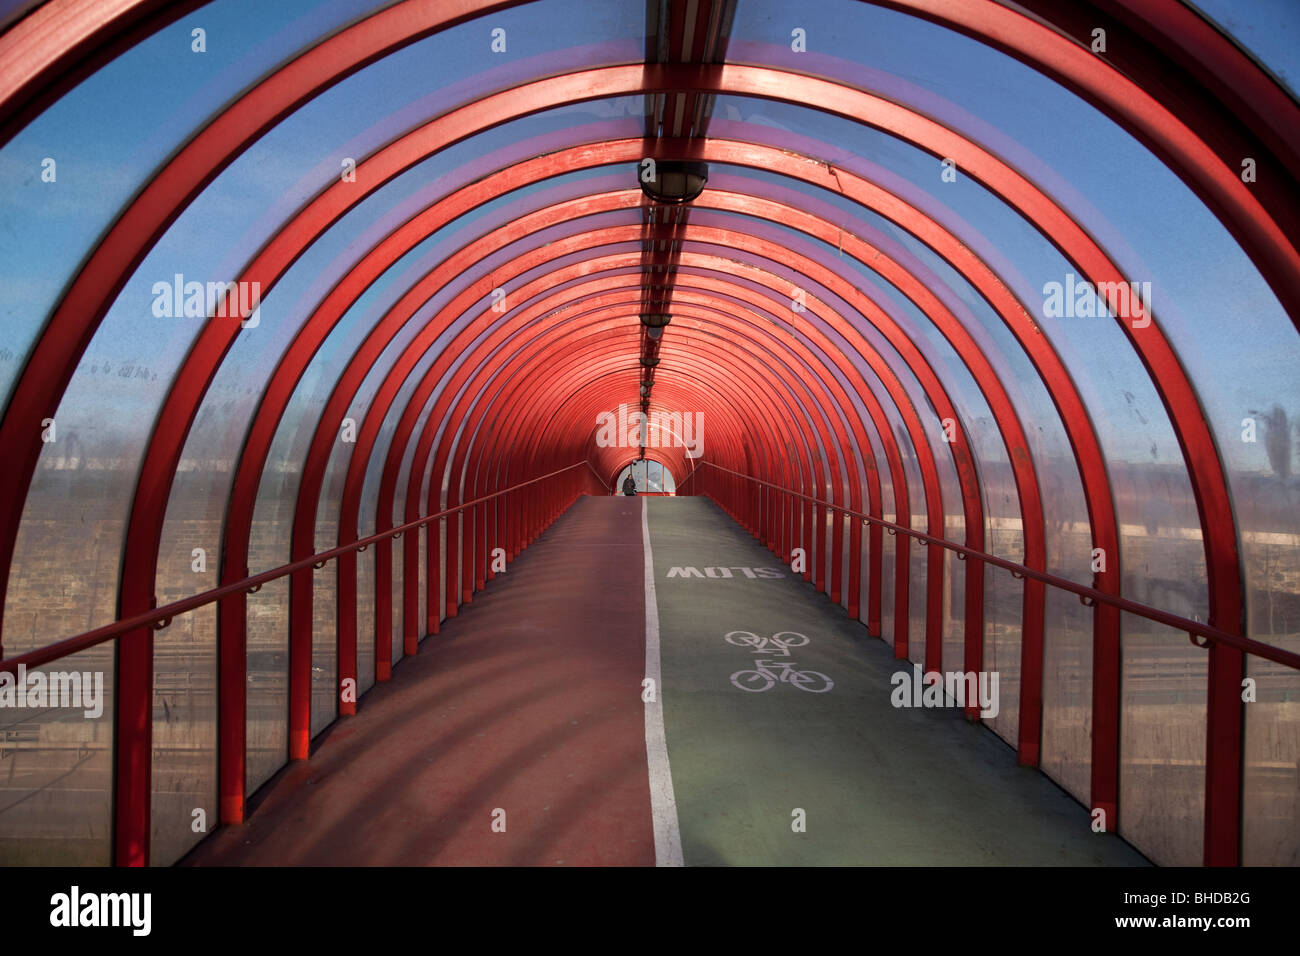 A view along an enclosed footbridge in Glasgow, Scotland. - Stock Image